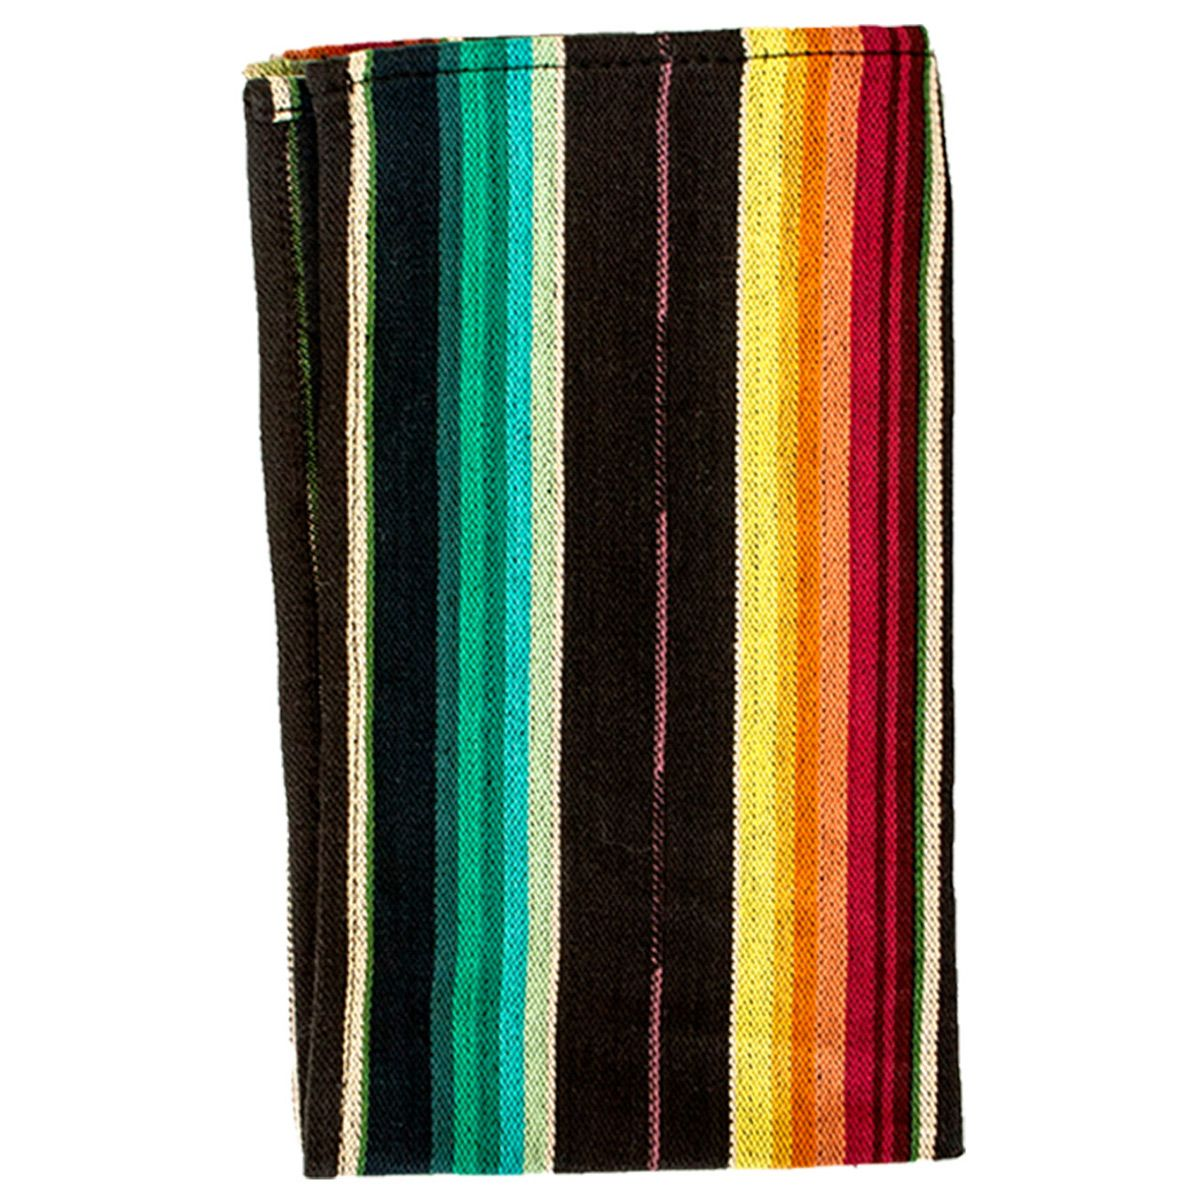 Black Serape Napkins - Set of 4